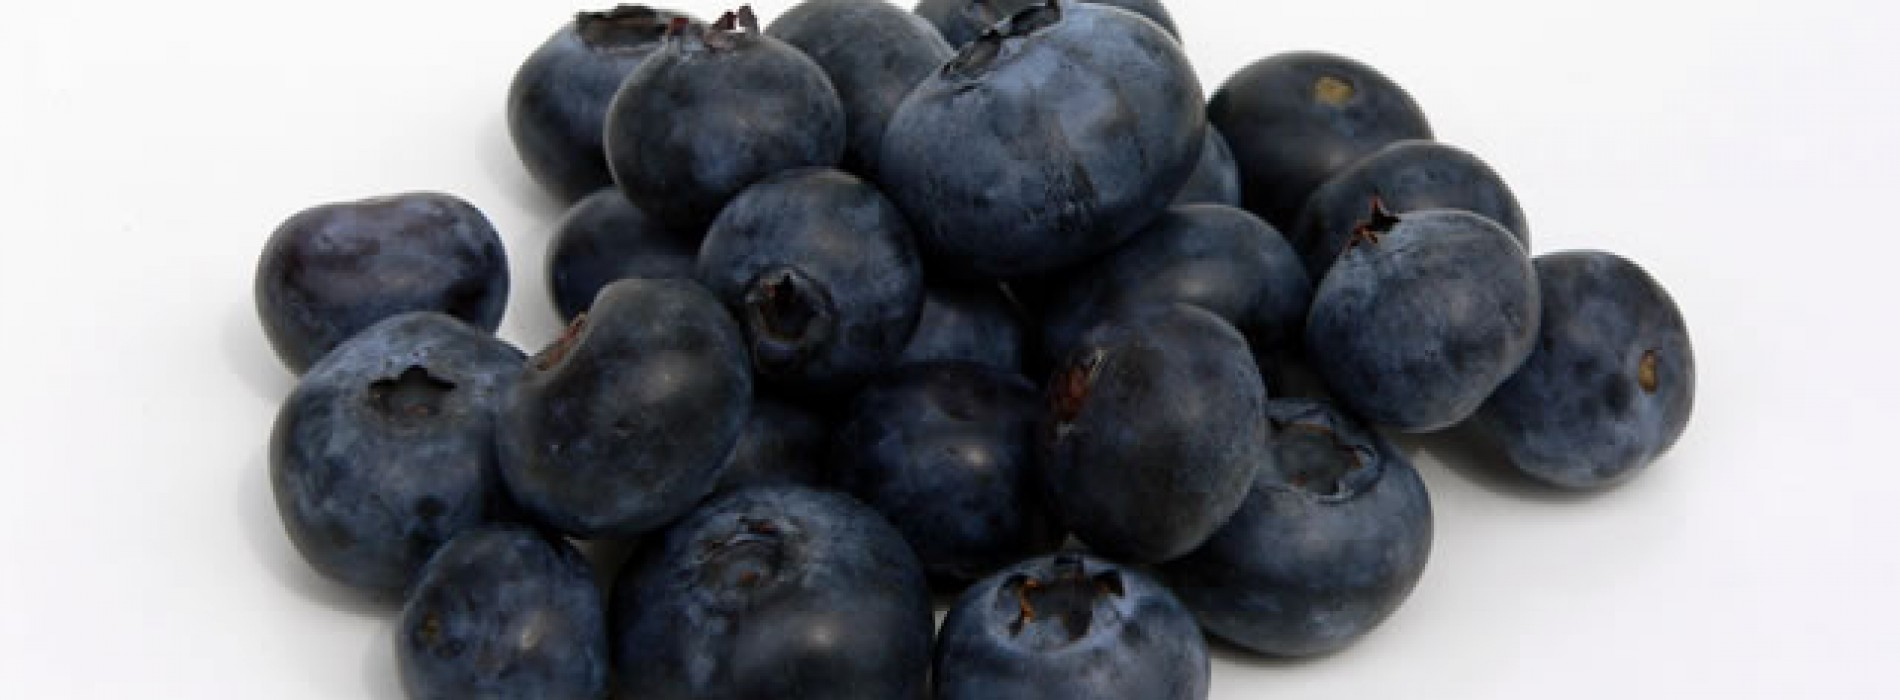 What's So Great About…Blueberries